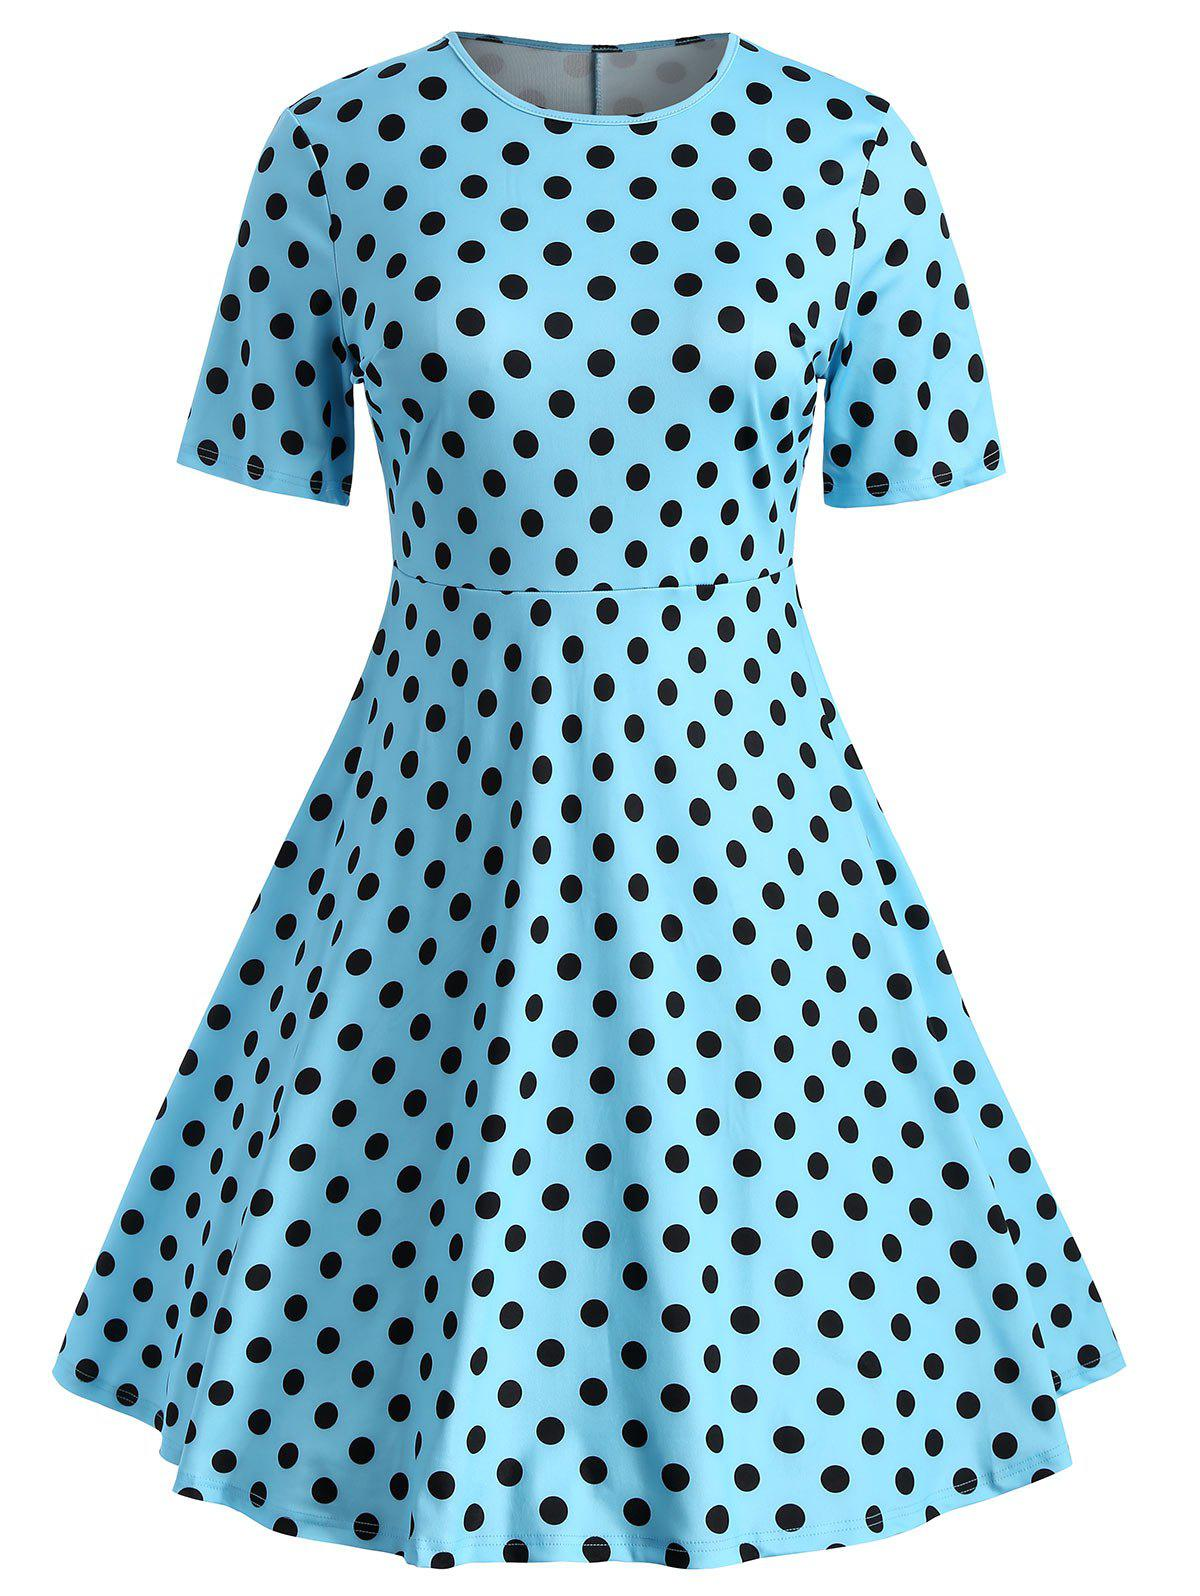 Sale Polka Dot Plus Size Flare Dress